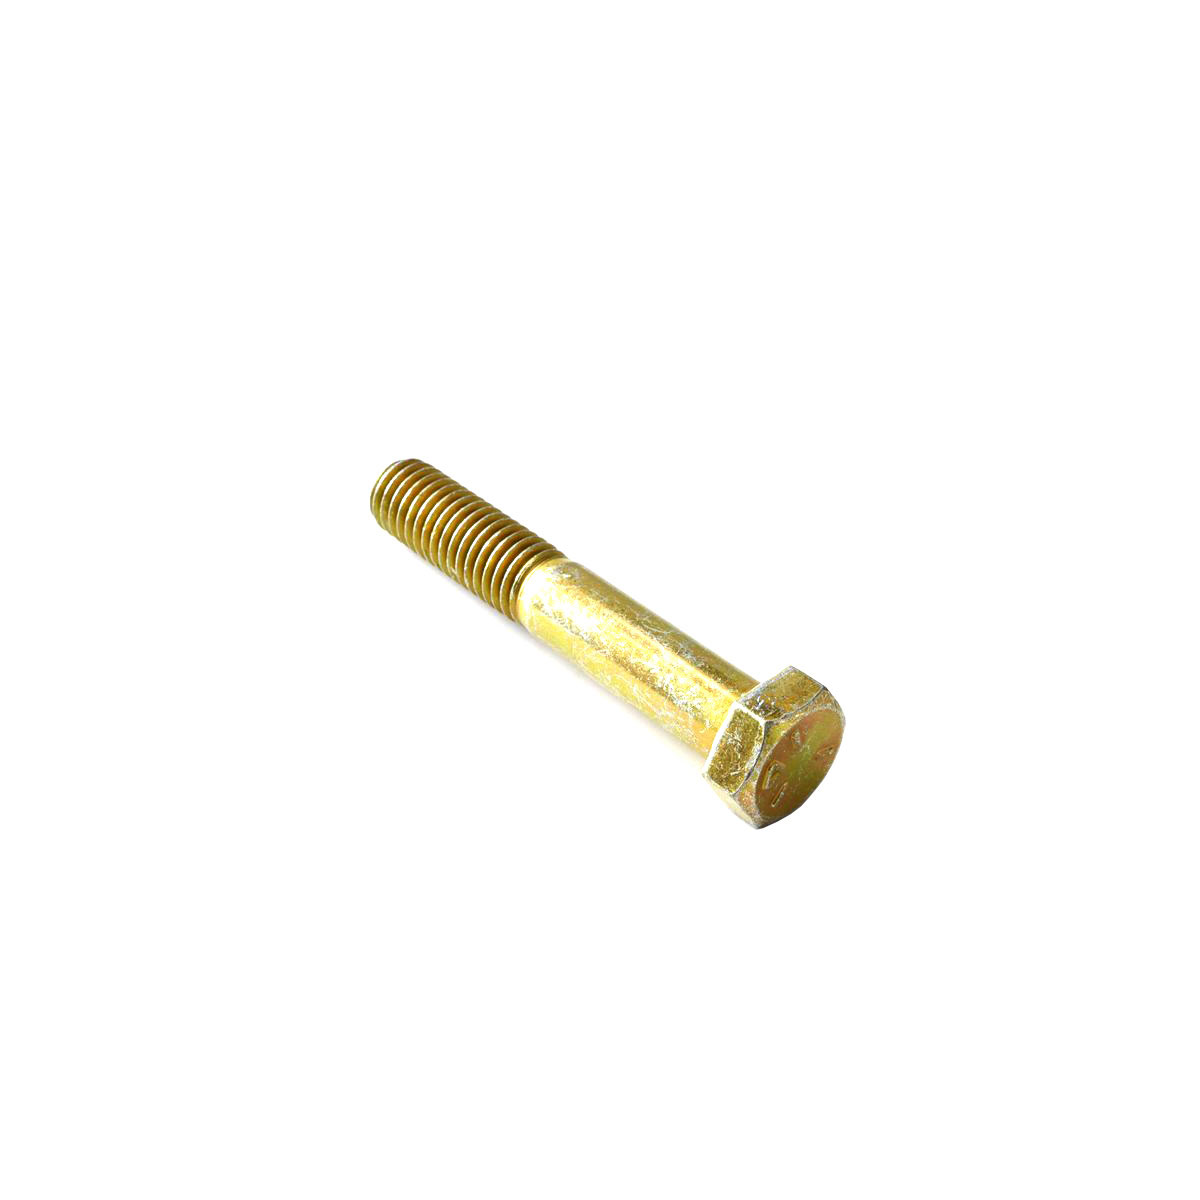 Scag Hex Head Bolt 1/2-13 x 3 inch 04001-74